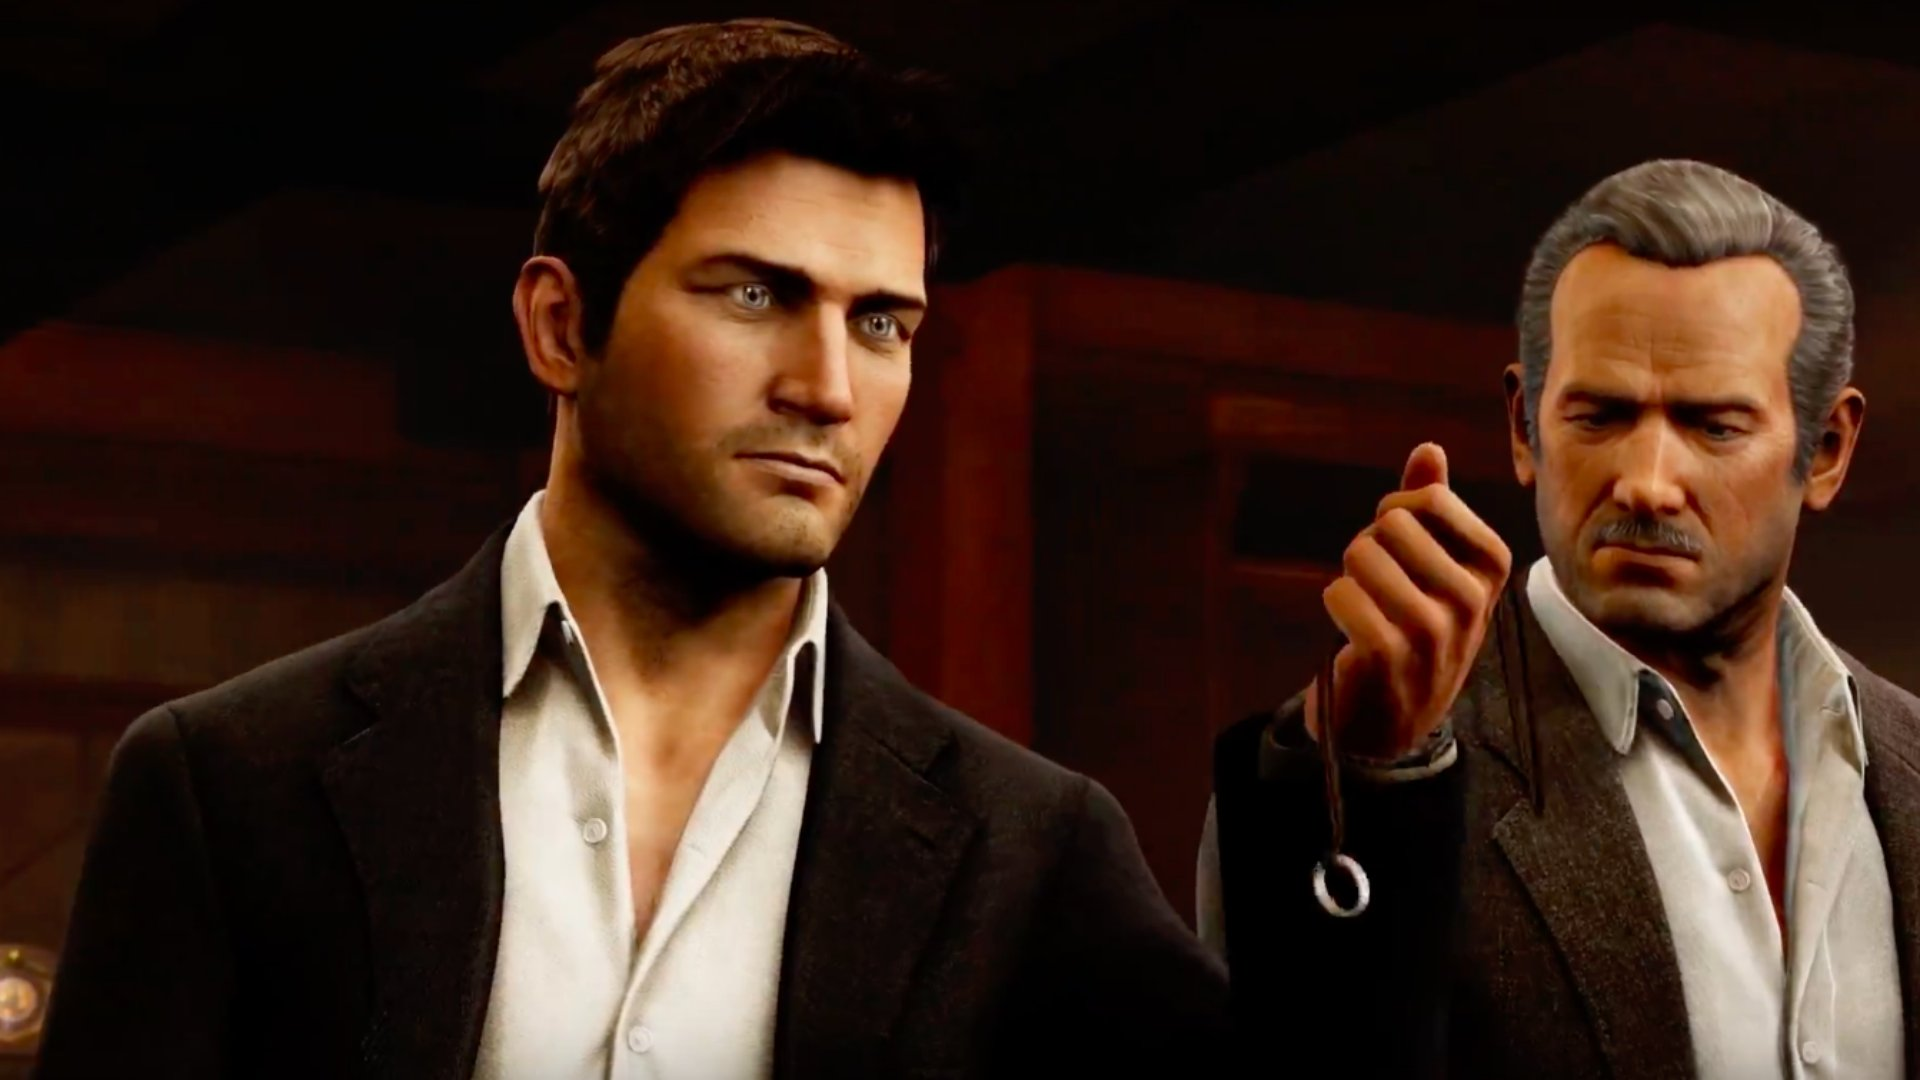 Nathan Drake has been a part of our lives for a decade now. #Uncharted10  https://t.co/yxbcPNvMyu https://t.co/fXHLxfLIYC